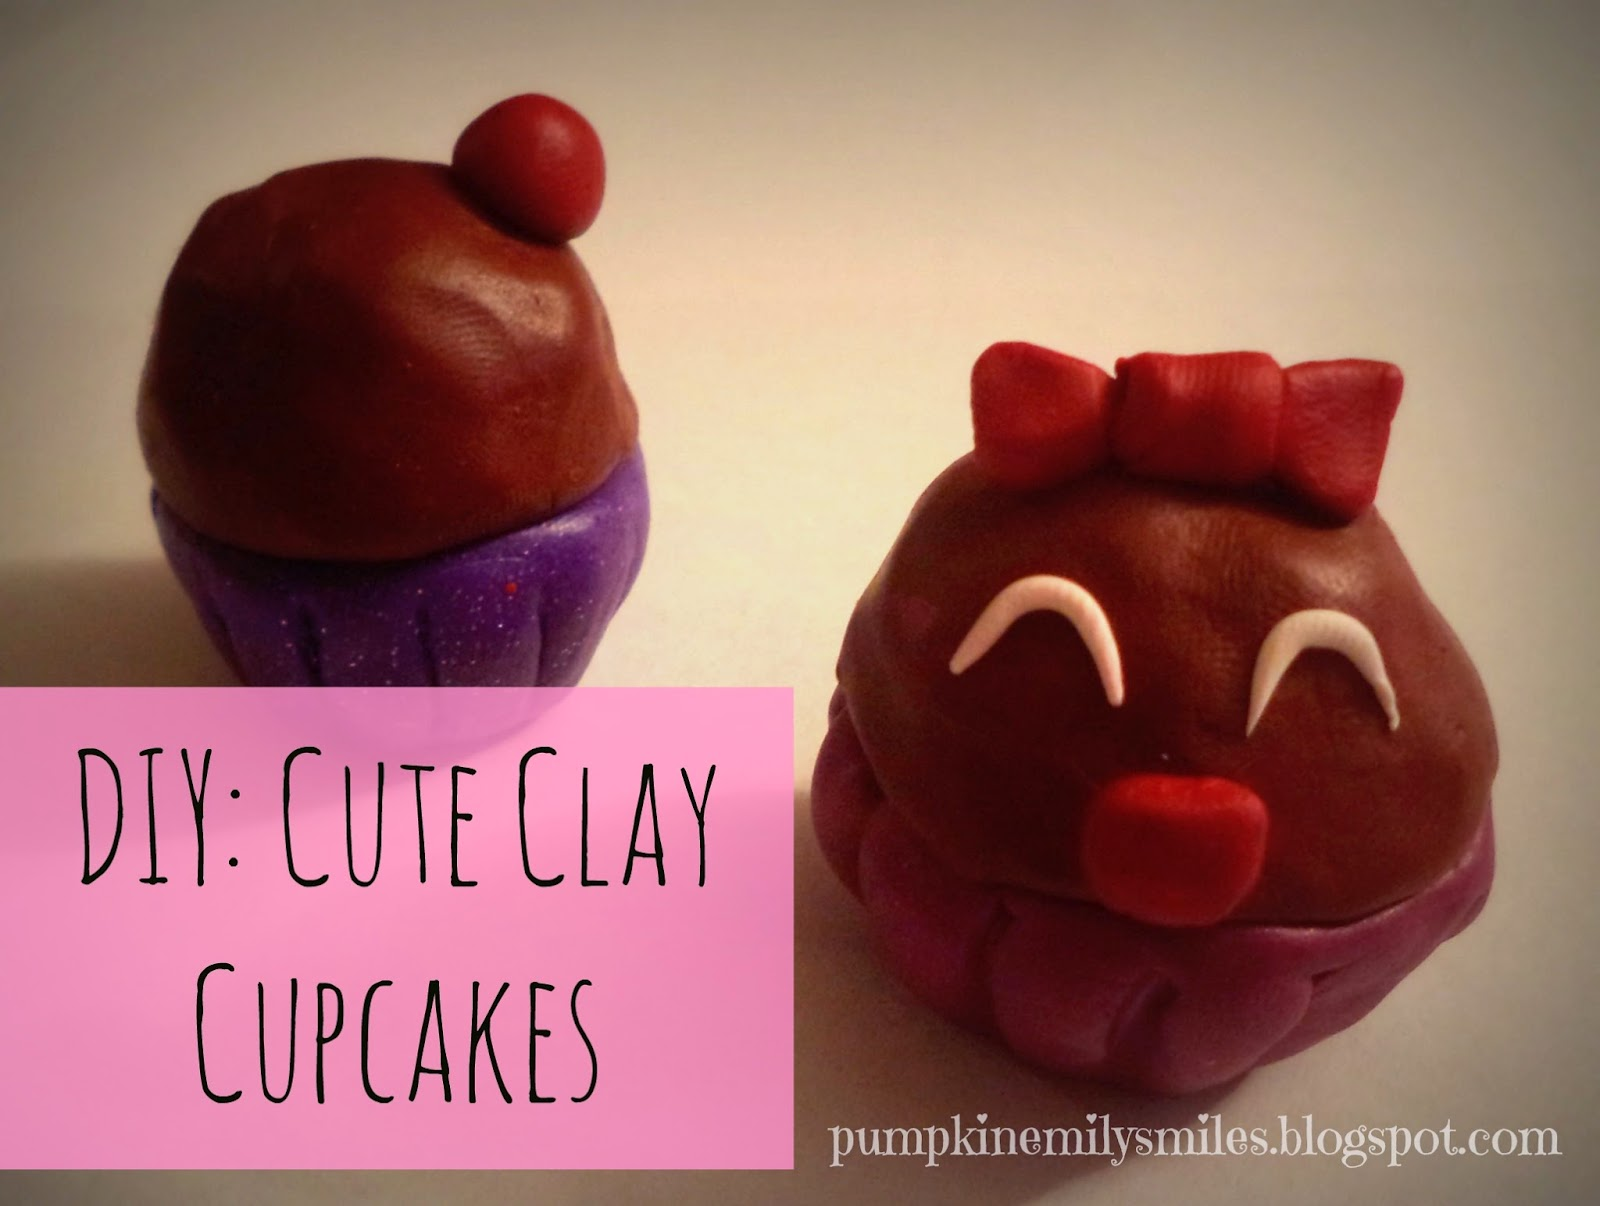 DIY: Cute Clay Cupcakes